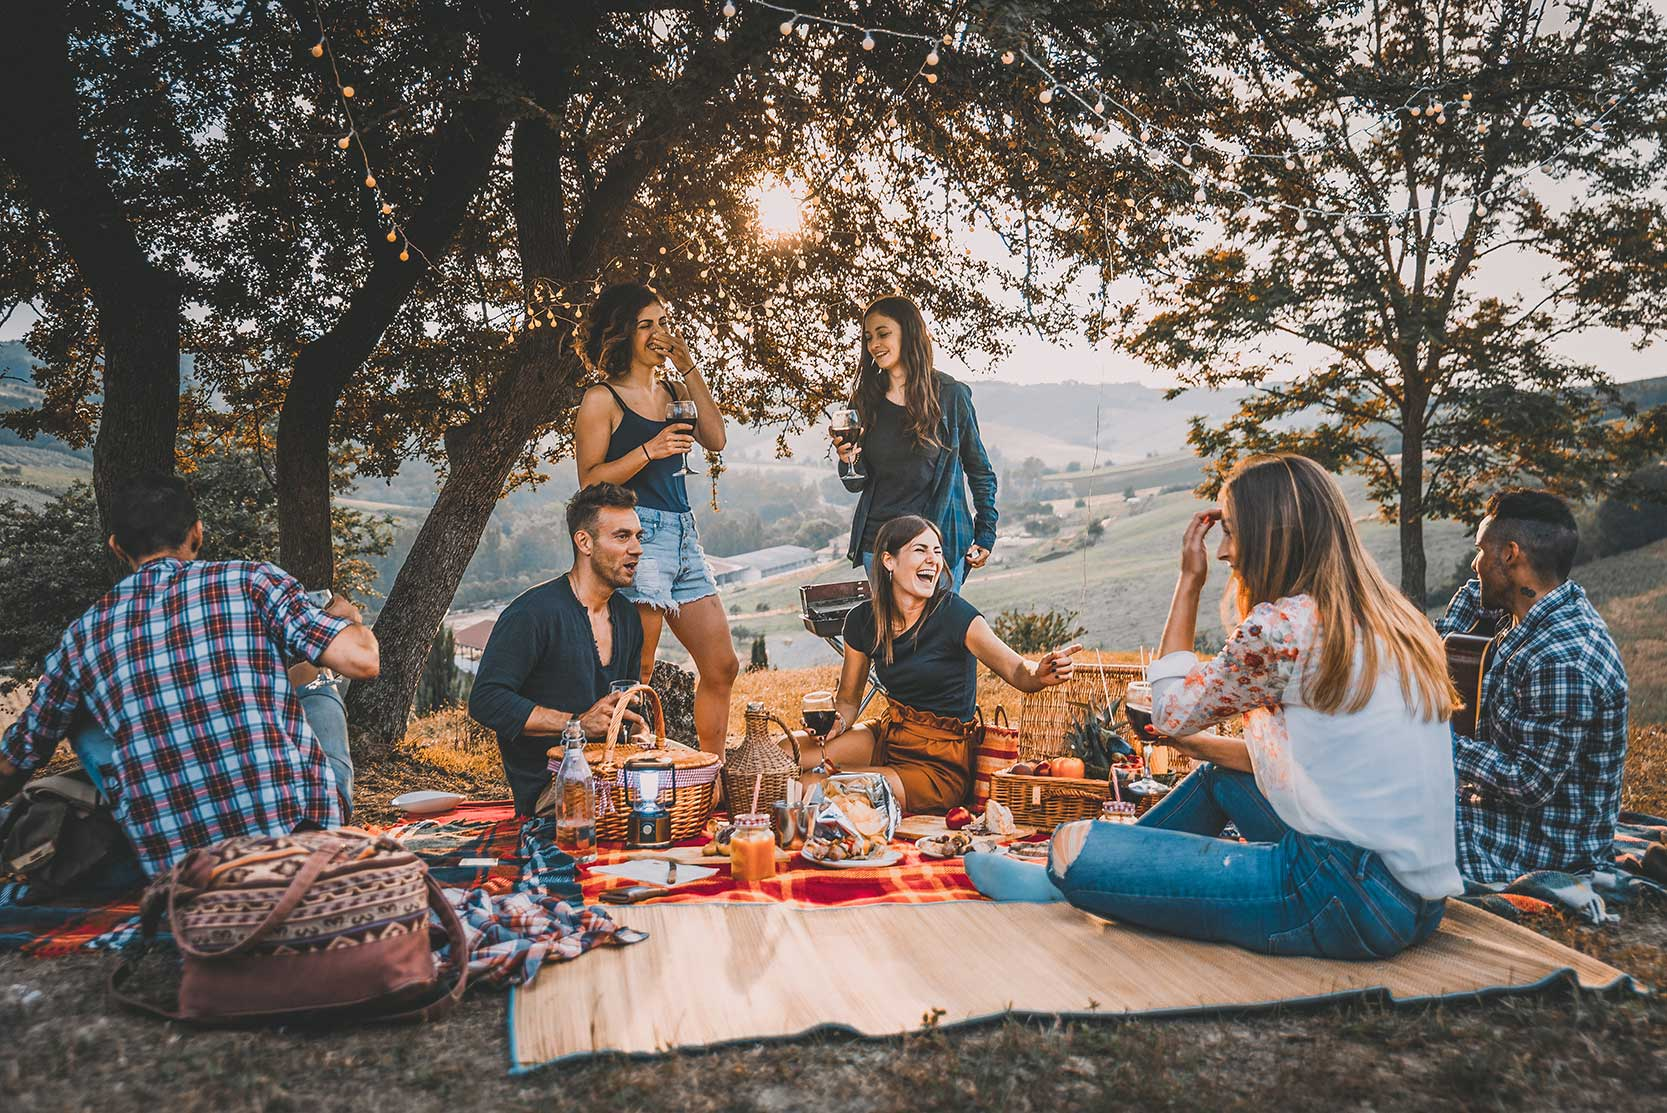 Photo of a friend having a picnic with preset applied.